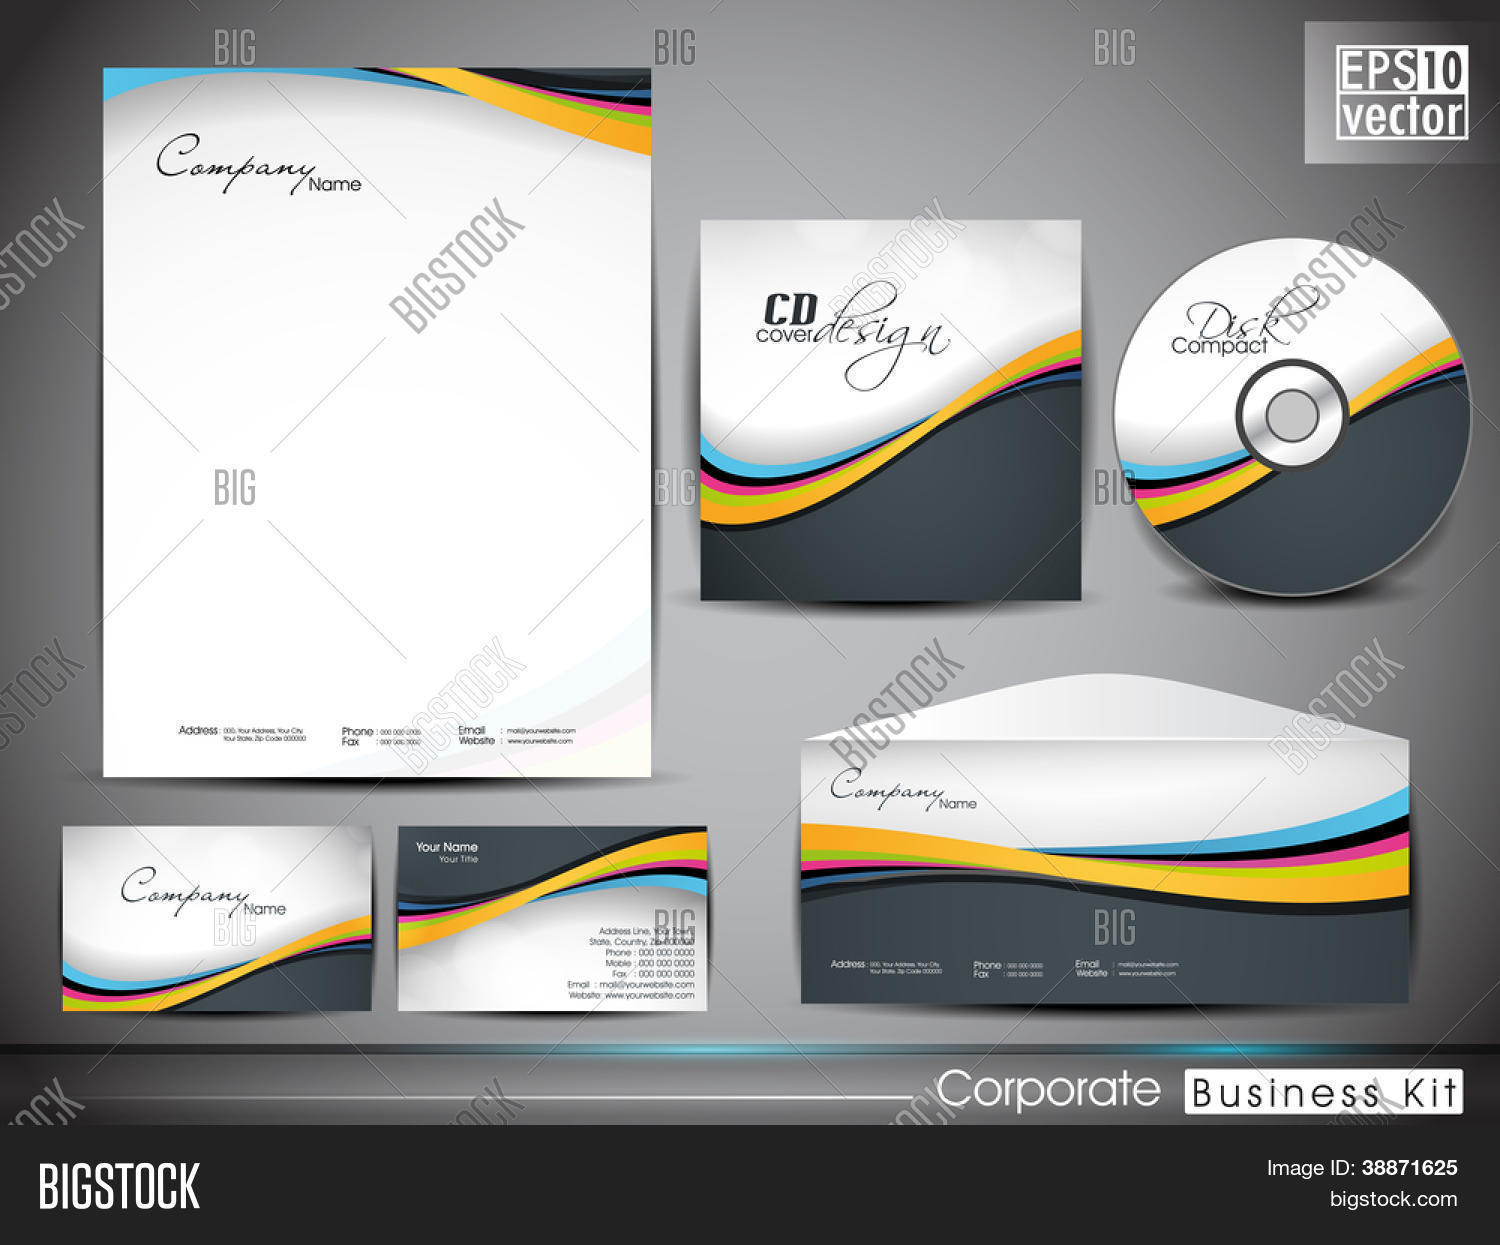 Professional vector photo free trial bigstock professional corporate identity kit or business kit with wave pattern for your business includes cd cover reheart Choice Image